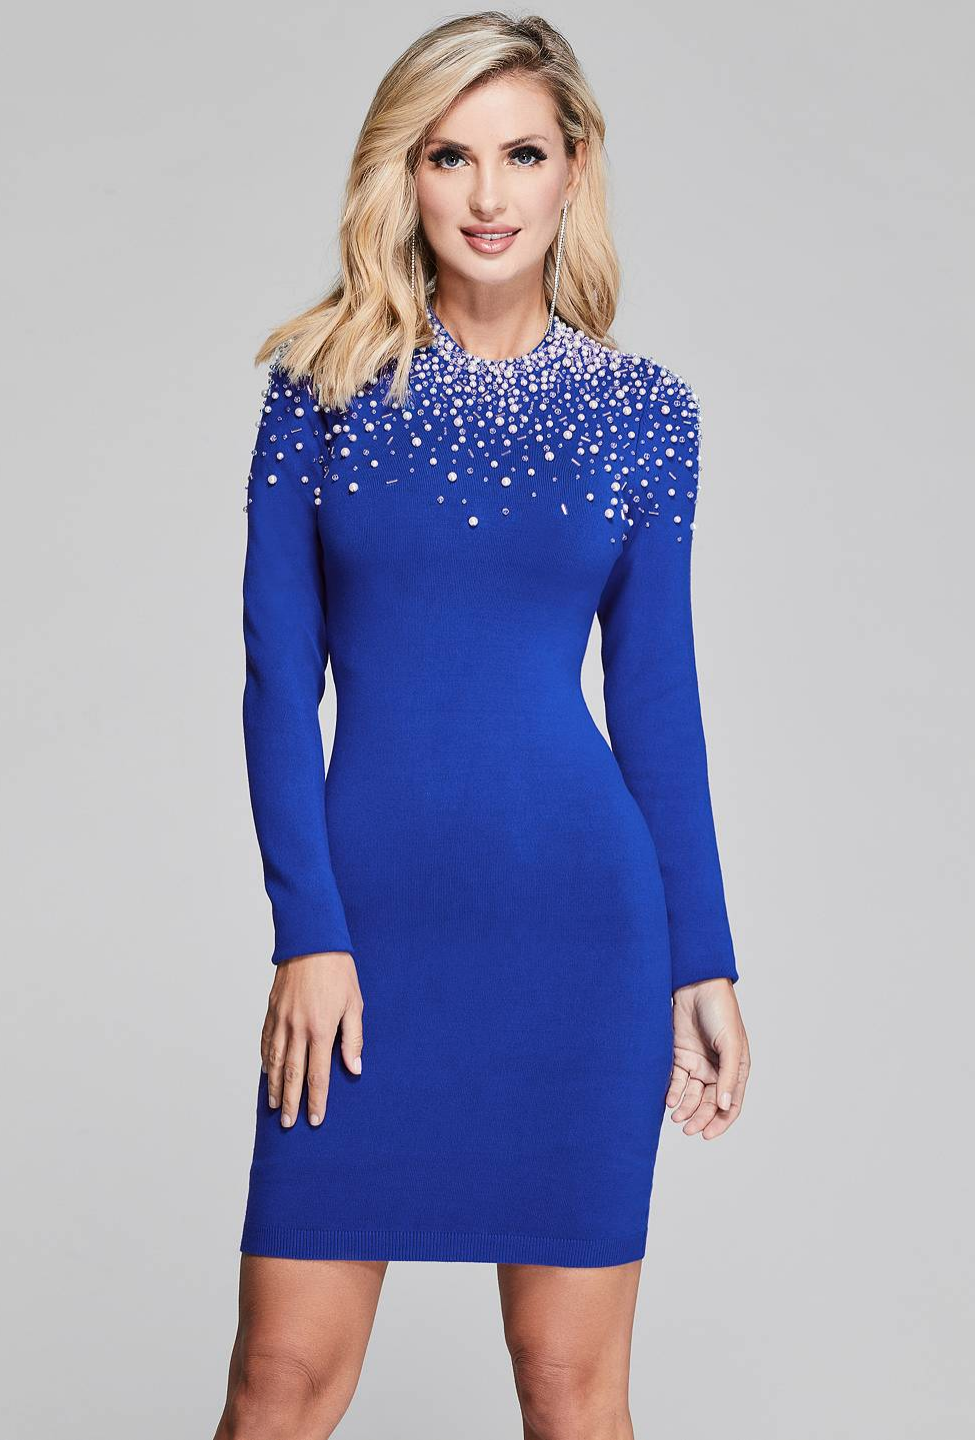 Blue sweater dress with pearl details by  marciano  fb576f90e